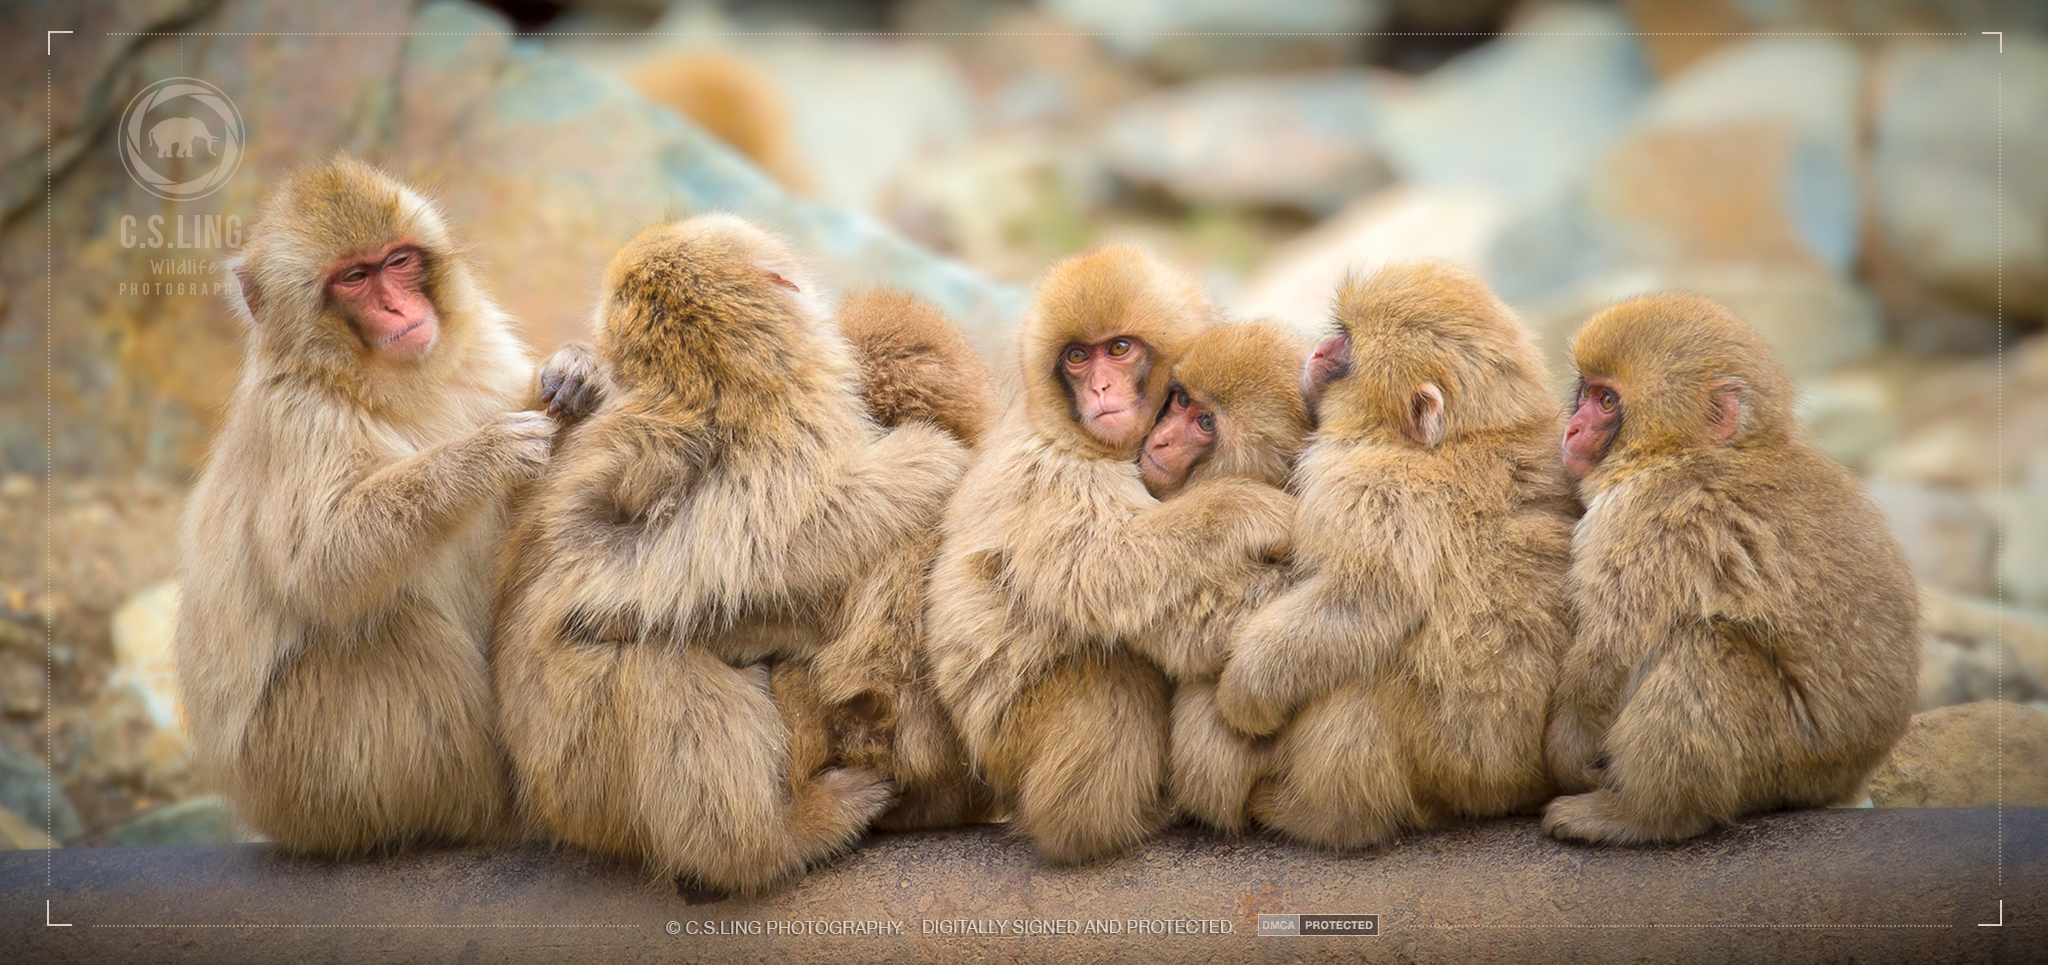 Photo: Snow Monkey Group Hug | Cute Animal Photos